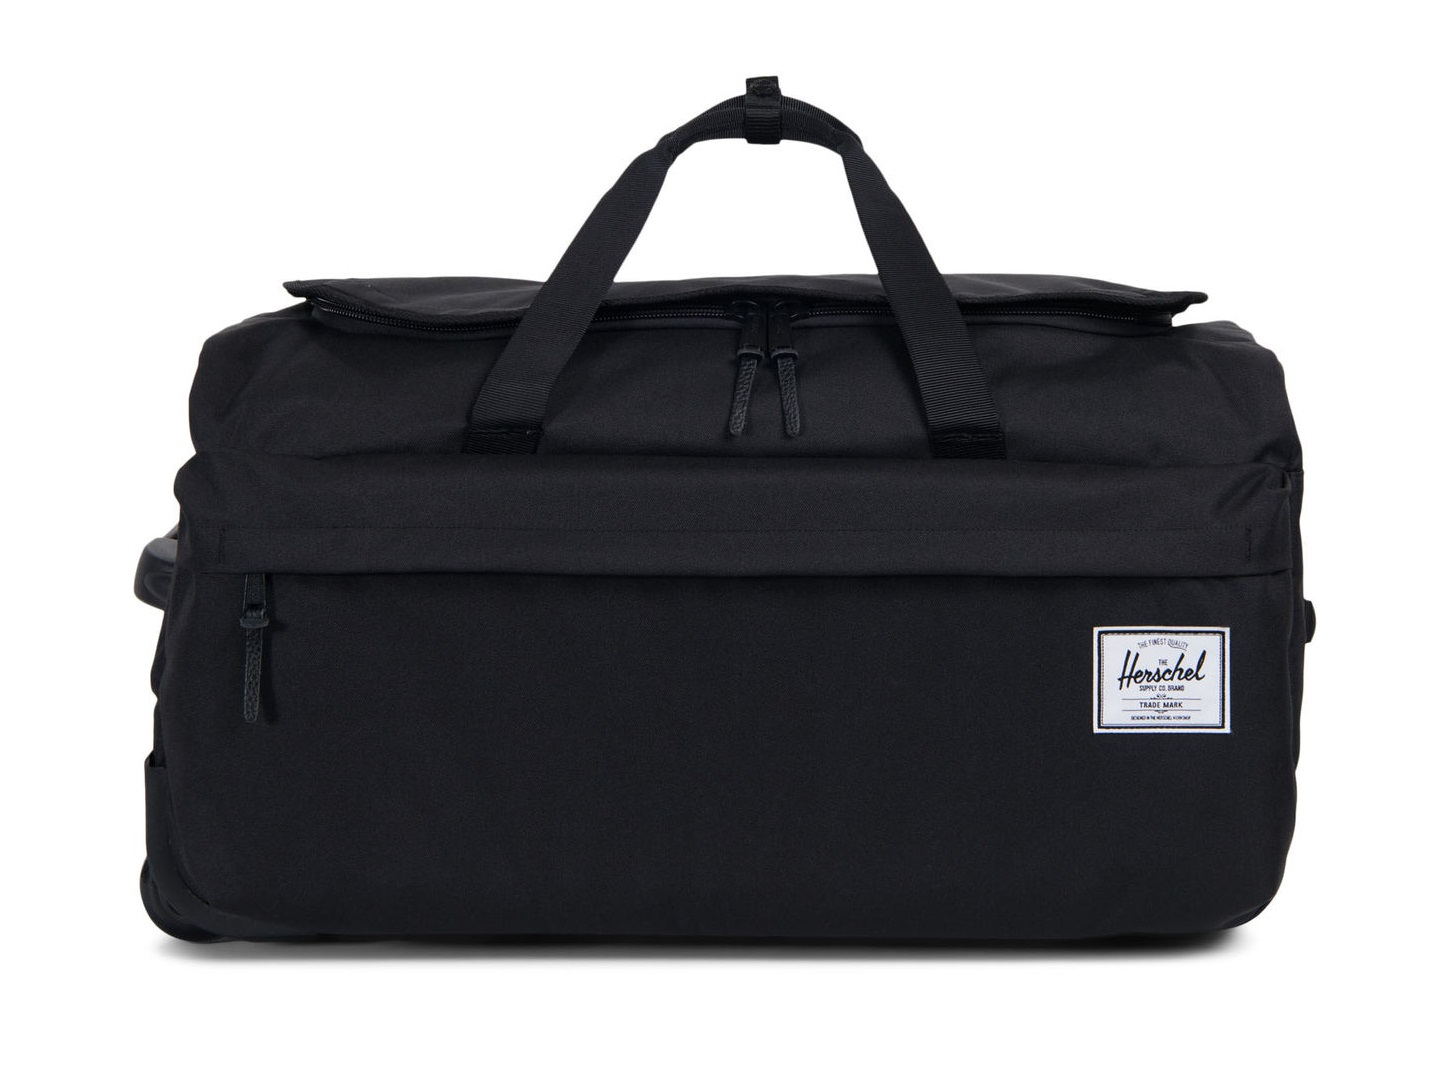 Herschel Wheelie Outfitter Duffel Bag | Travel bags